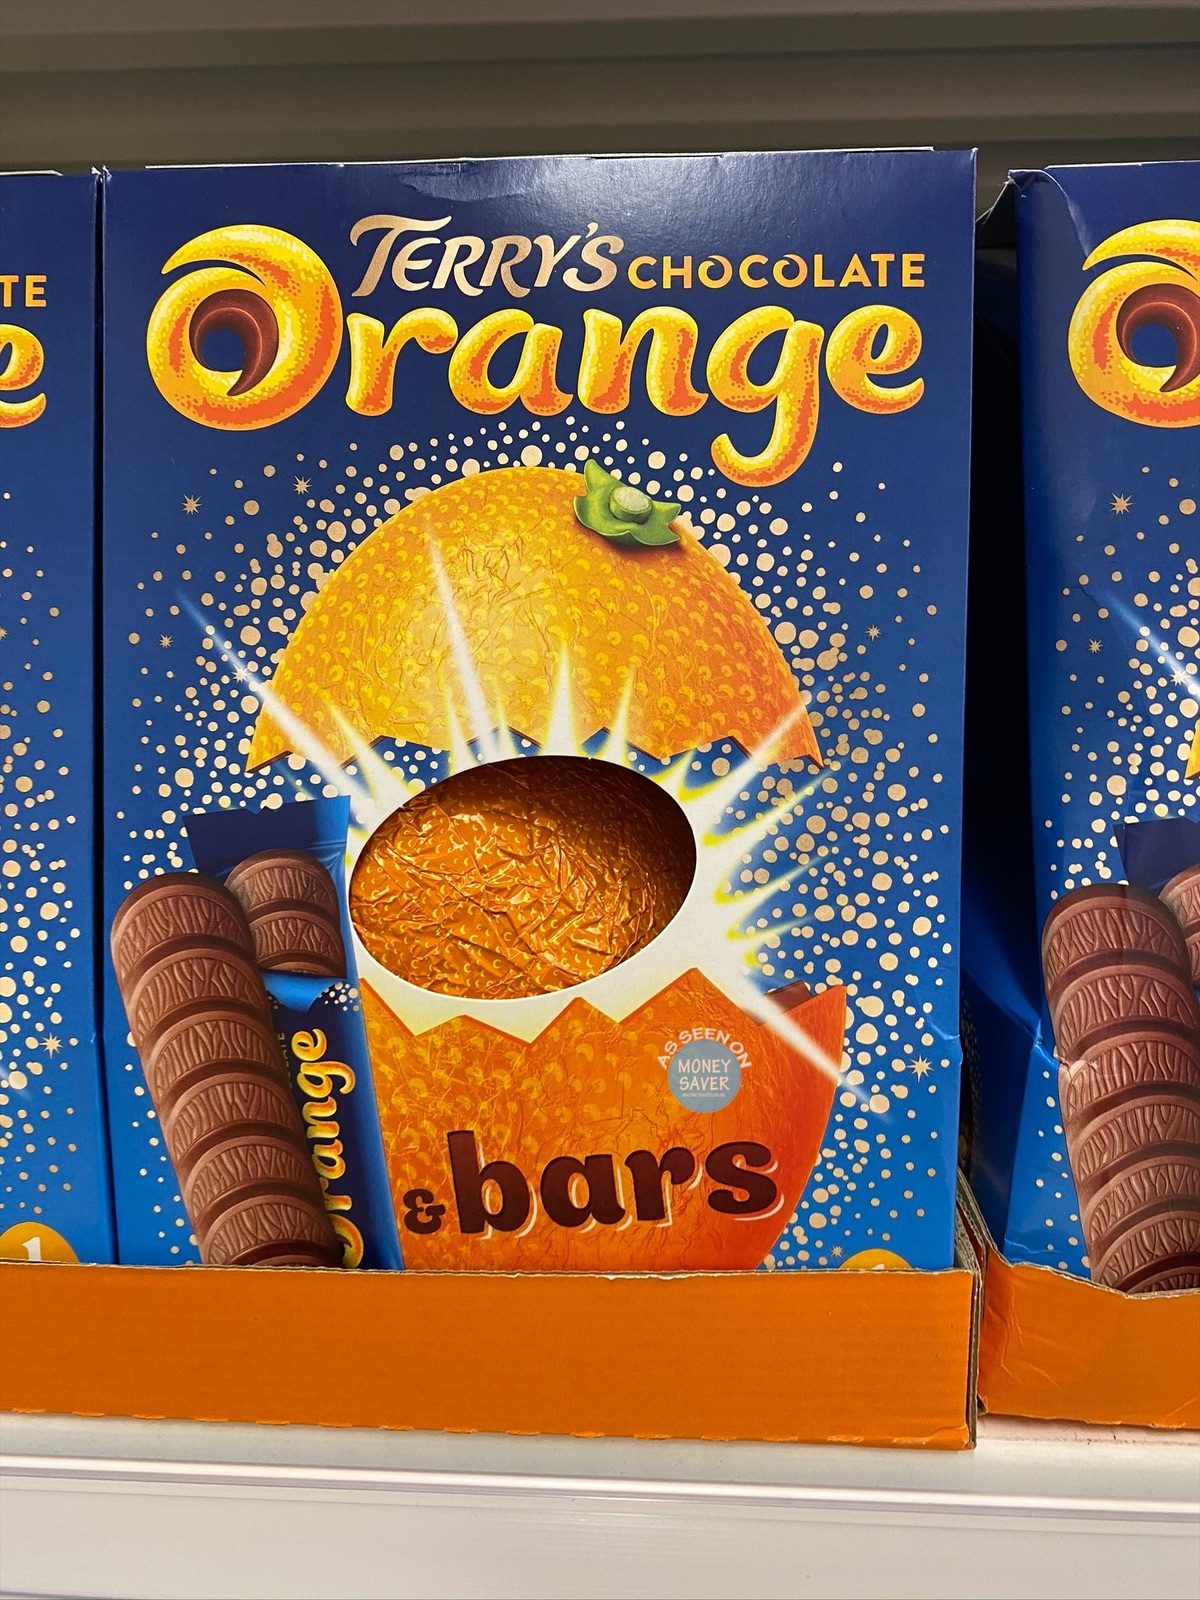 Easter Candy Eggs: Terry's Chocolate Orange Easter Egg From Tesco Goes Viral